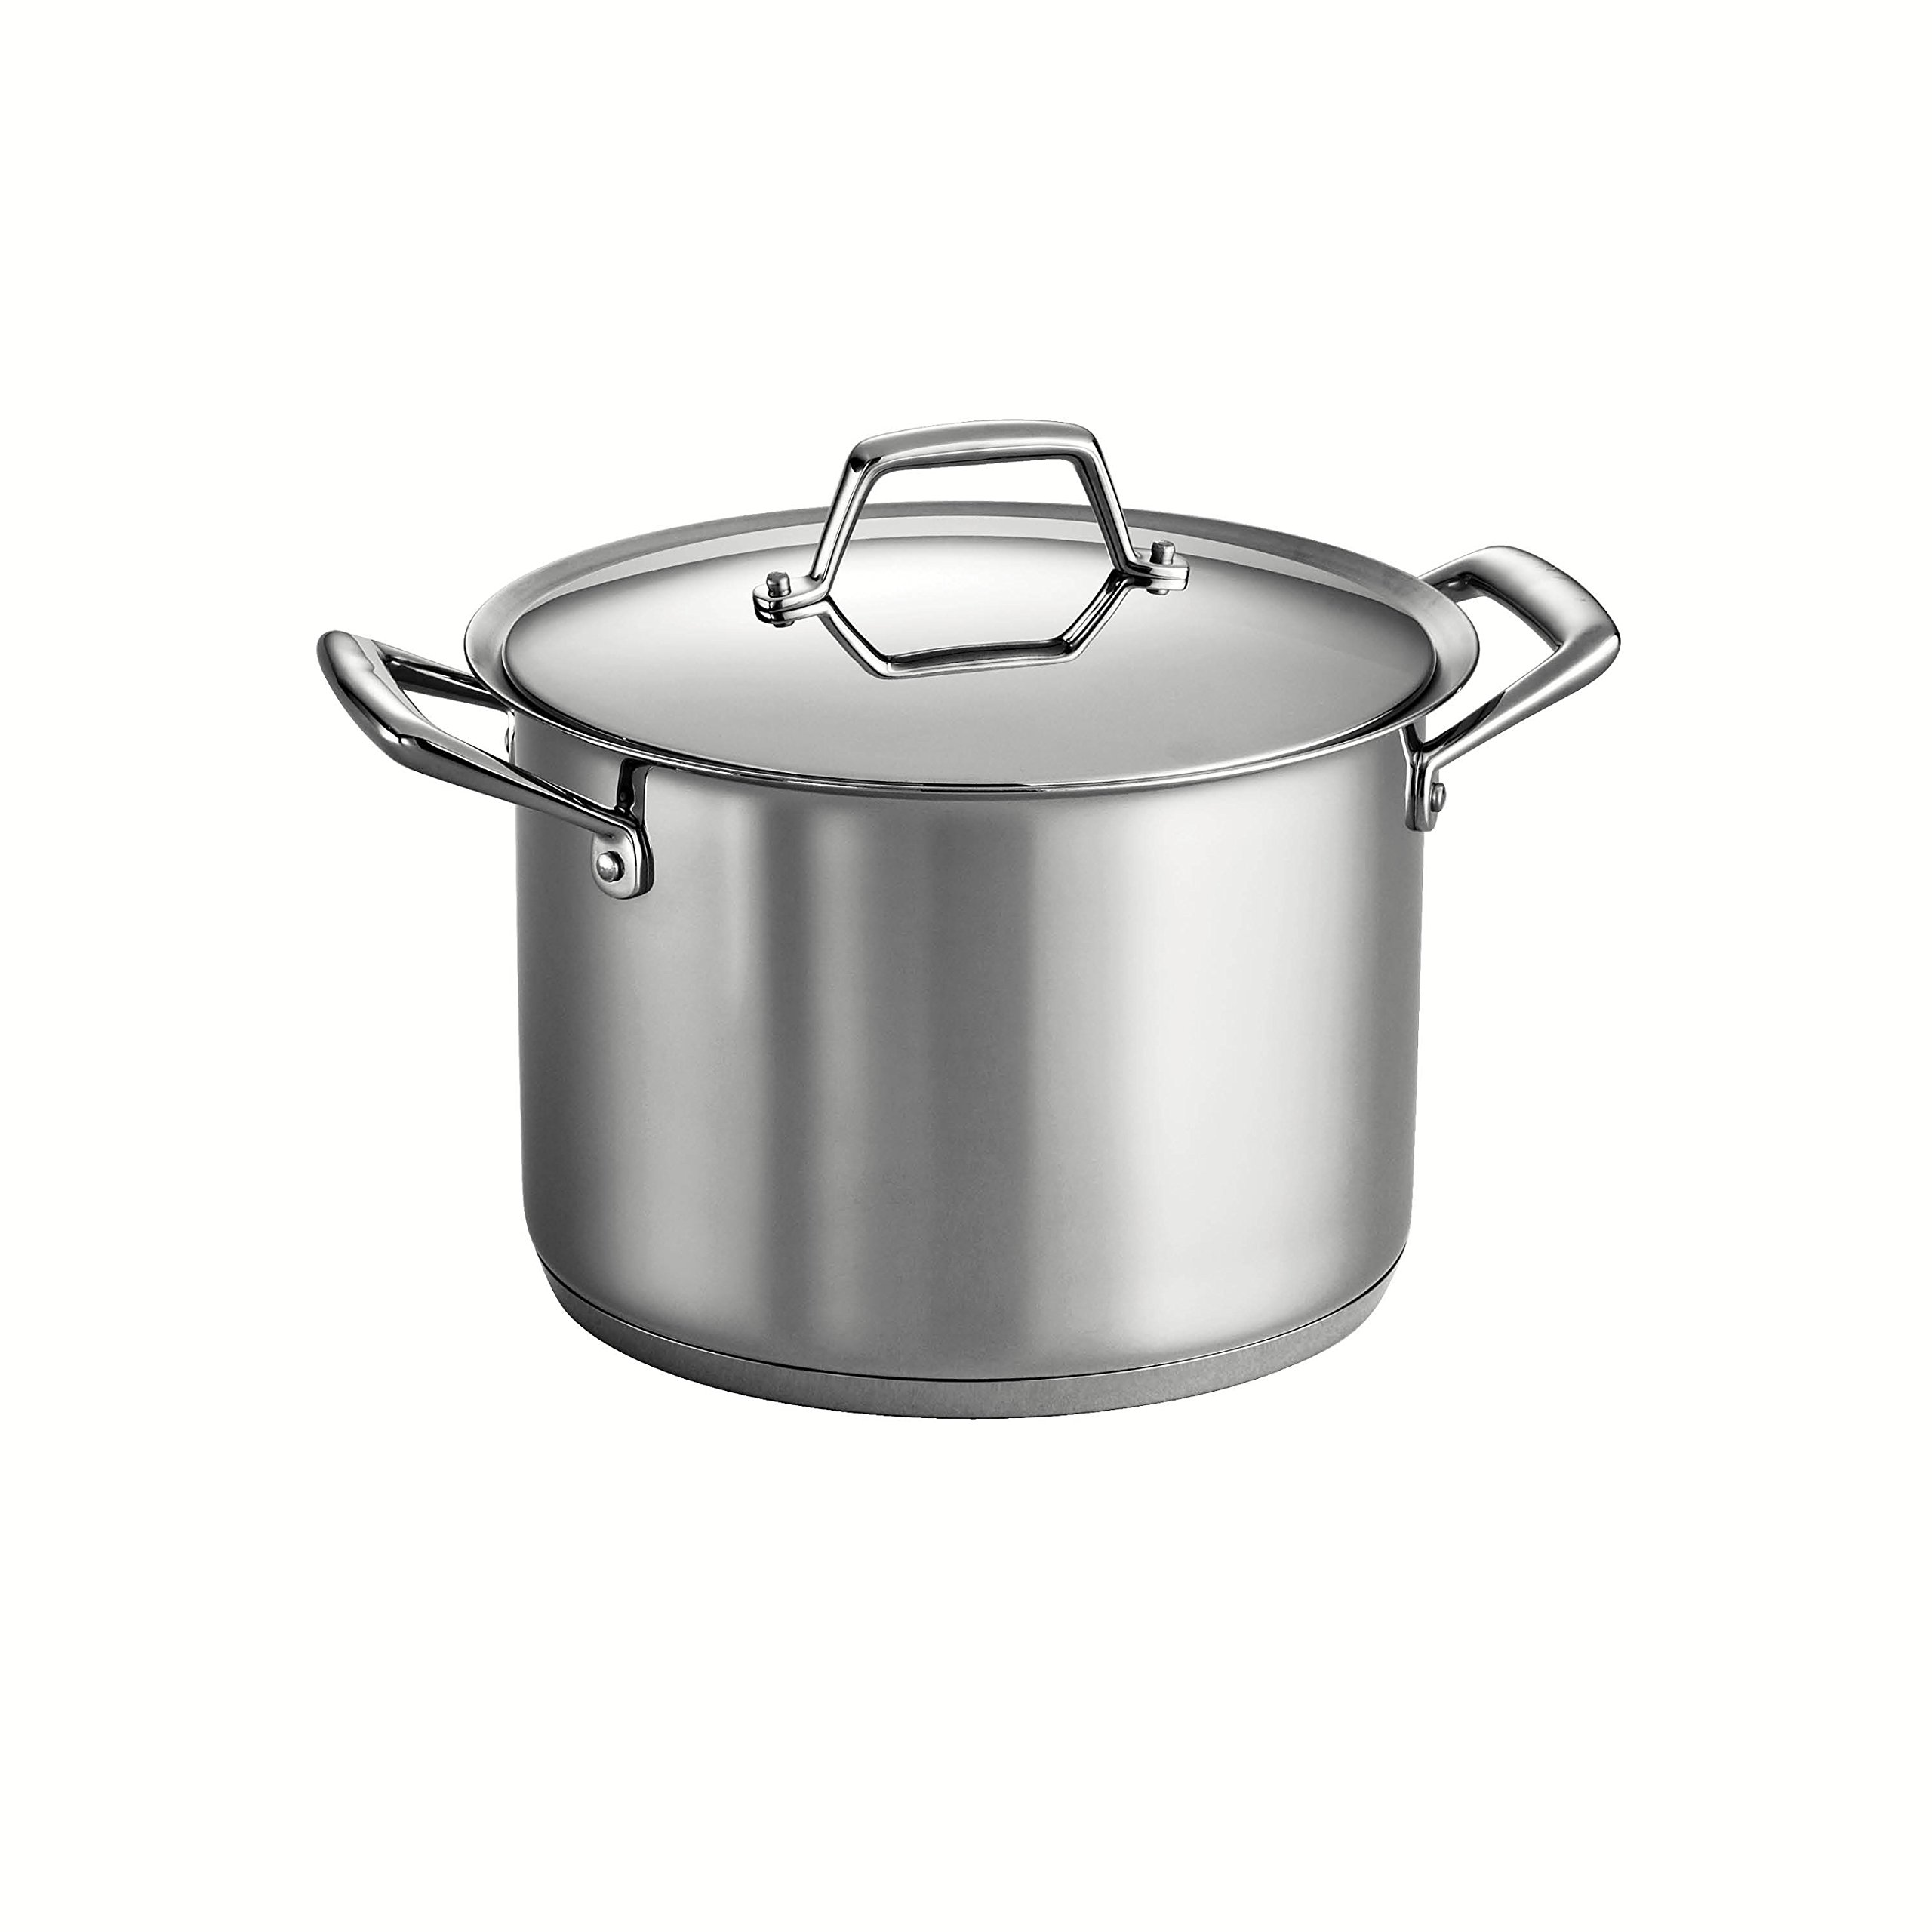 Tramontina 80101/012DS Gourmet Prima Stainless Steel Tri-Ply Base Covered Stock Pot, 12 Quart, Made in Brazil